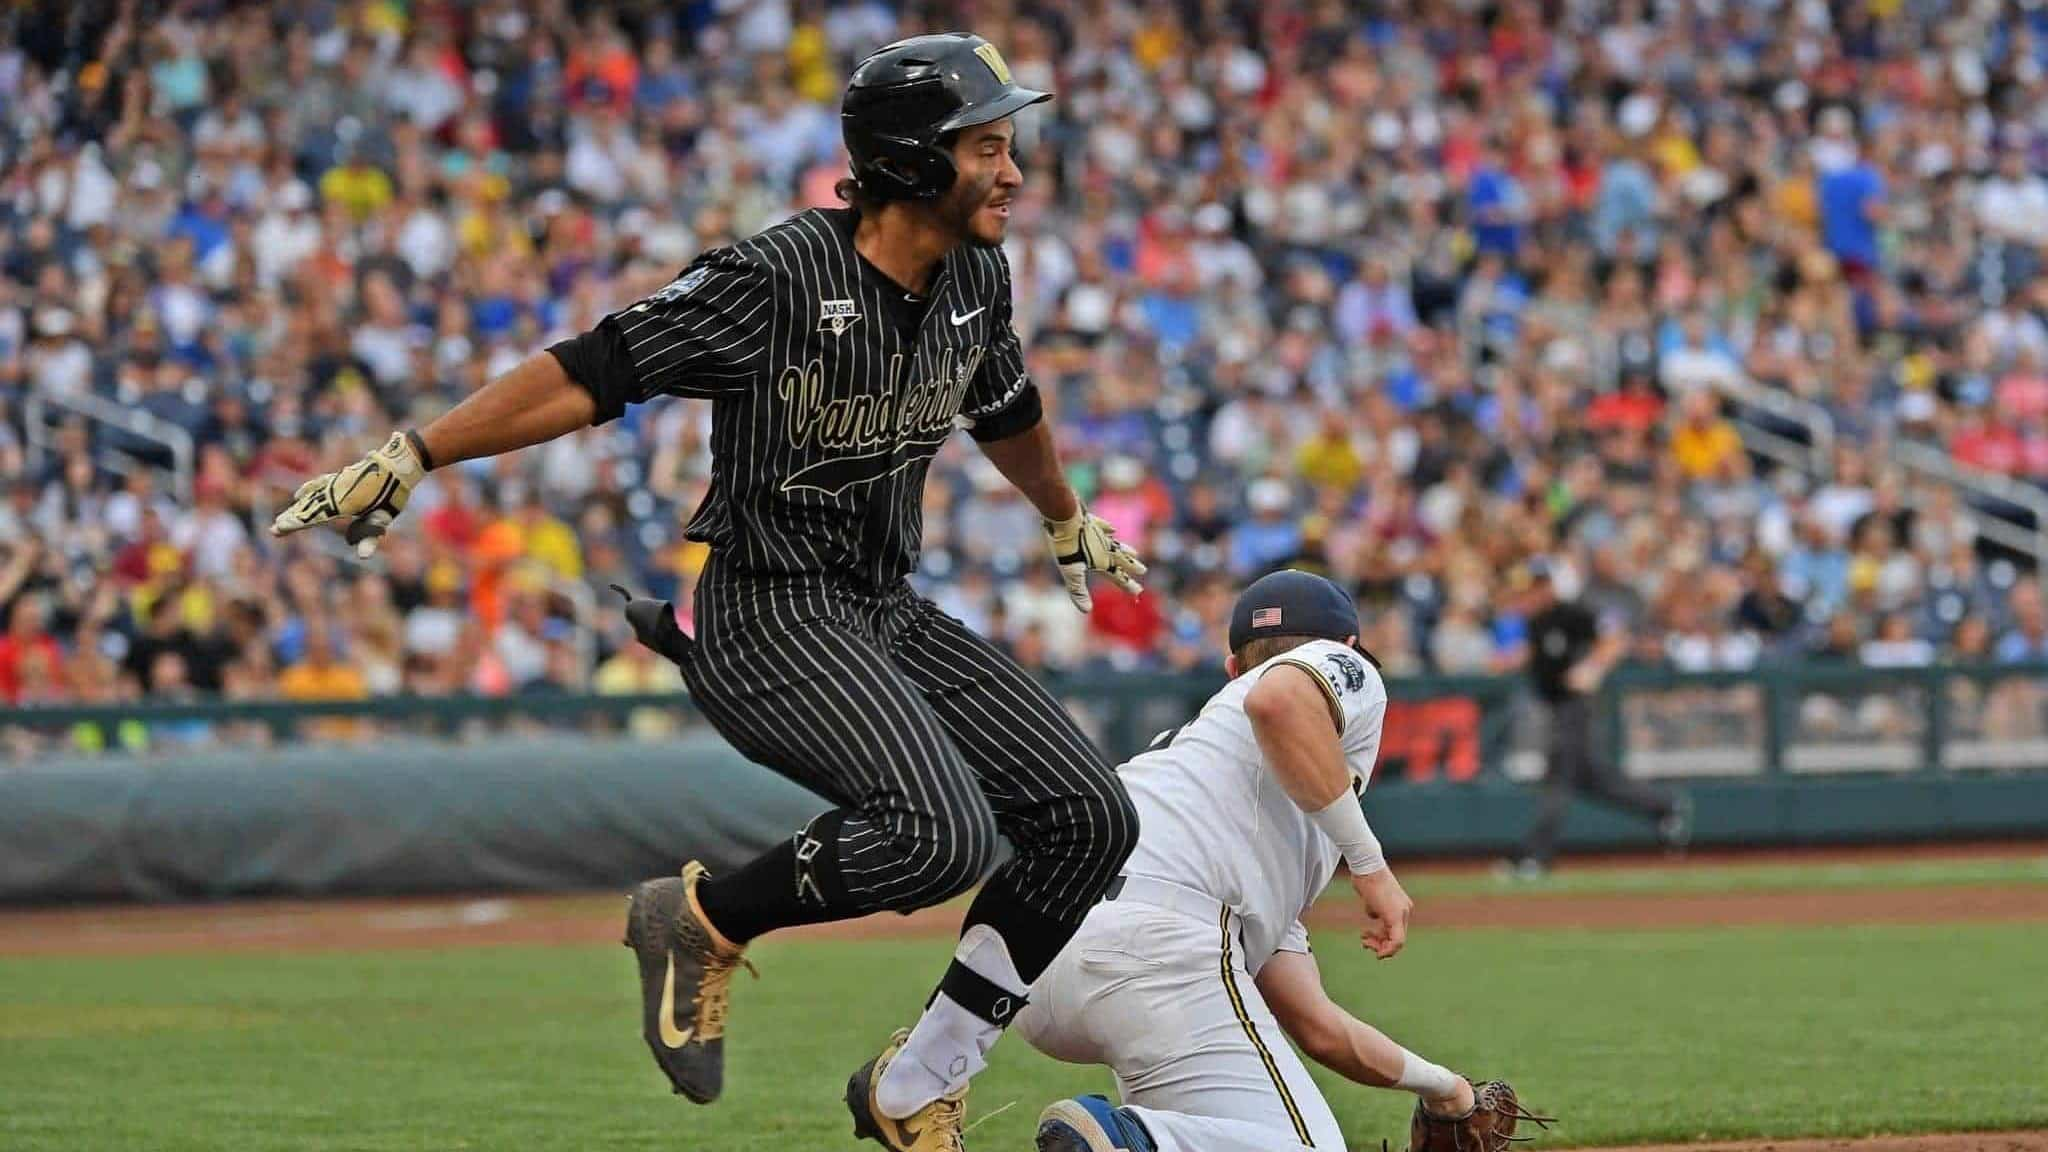 OMAHA, NE - JUNE 25: Austin Martin #16 of the Vanderbilt Commodores gets thrown out at first base in the third inning against the Michigan Wolverines during game two of the College World Series Championship Series on June 25, 2019 at TD Ameritrade Park Omaha in Omaha, Nebraska. MLB Draft